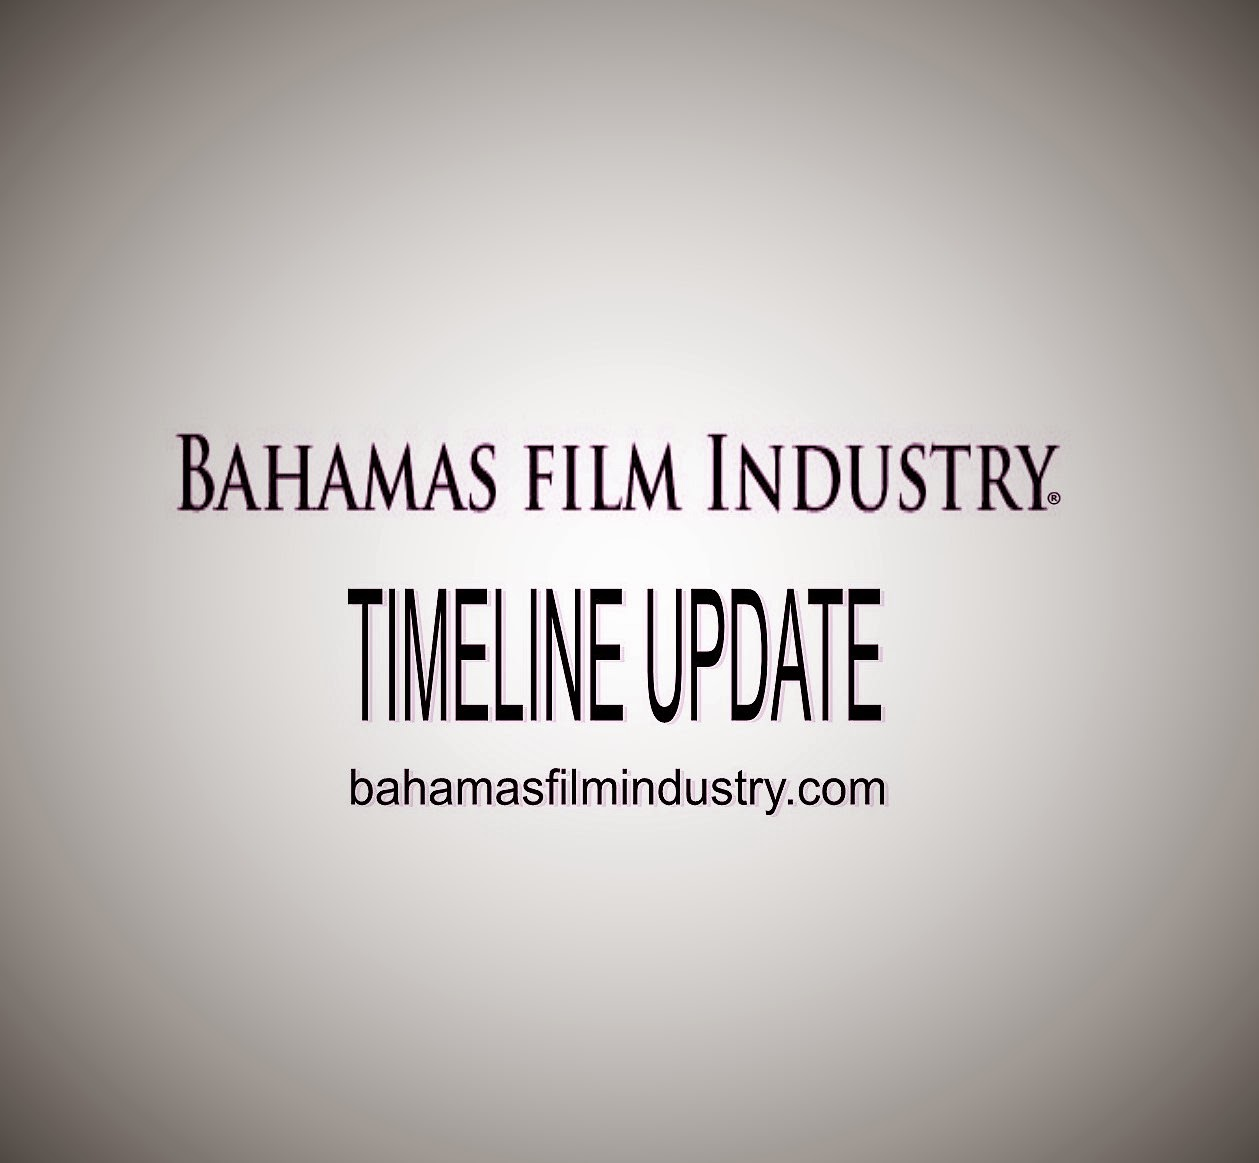 Stars In Paradise History of the Bahamas Film Industry timeline update